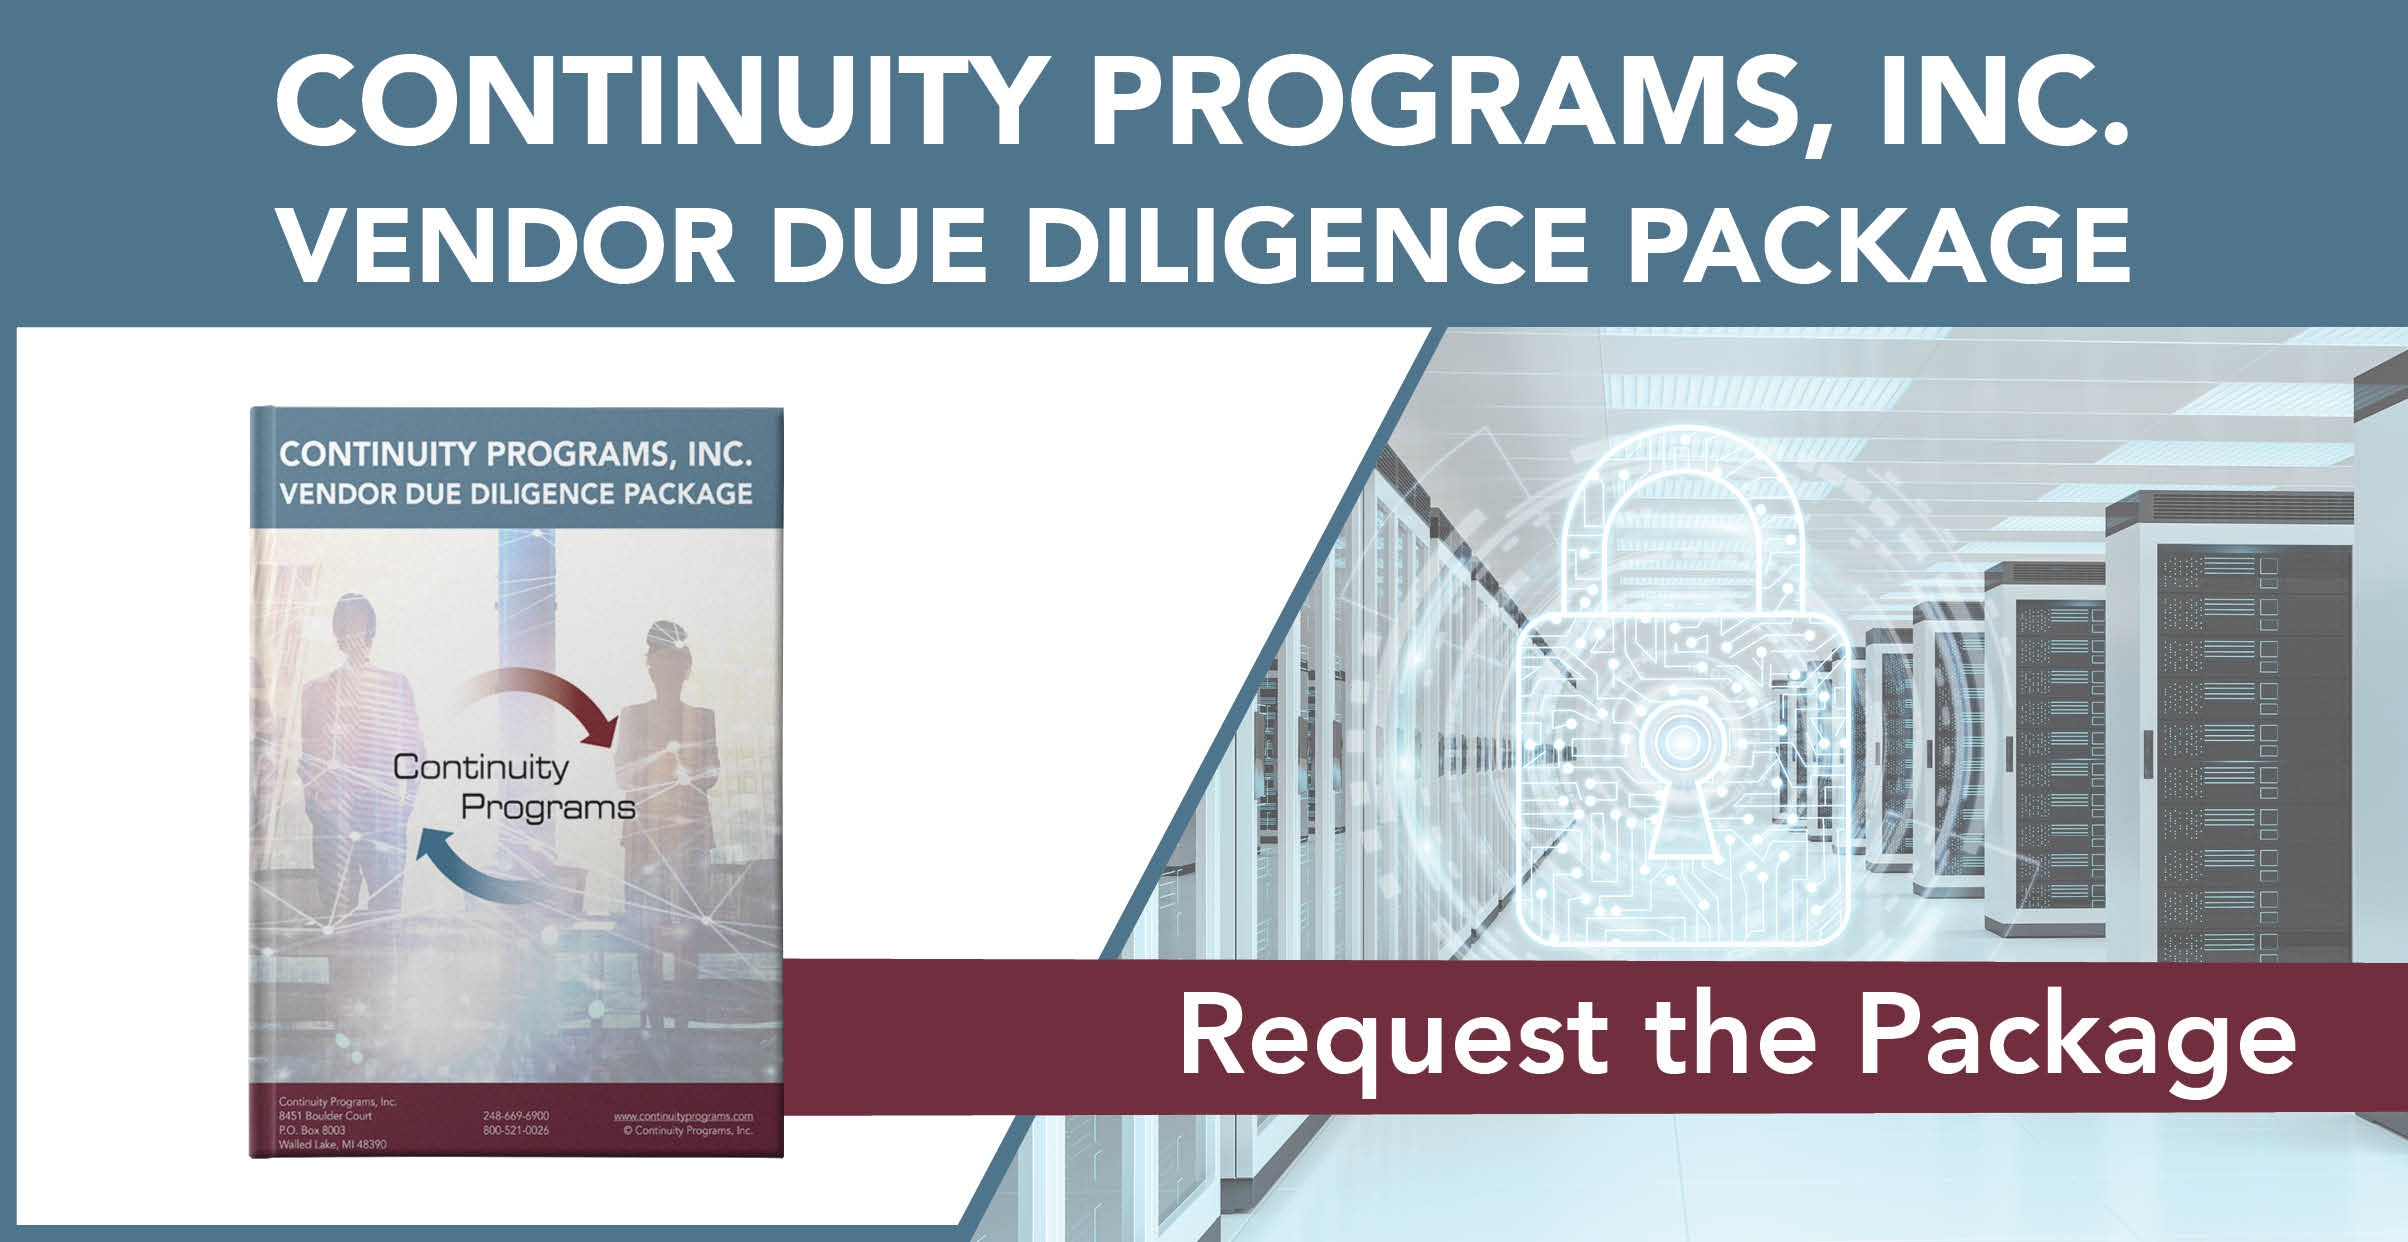 Continuity Programs Vendor Due Diligence Package